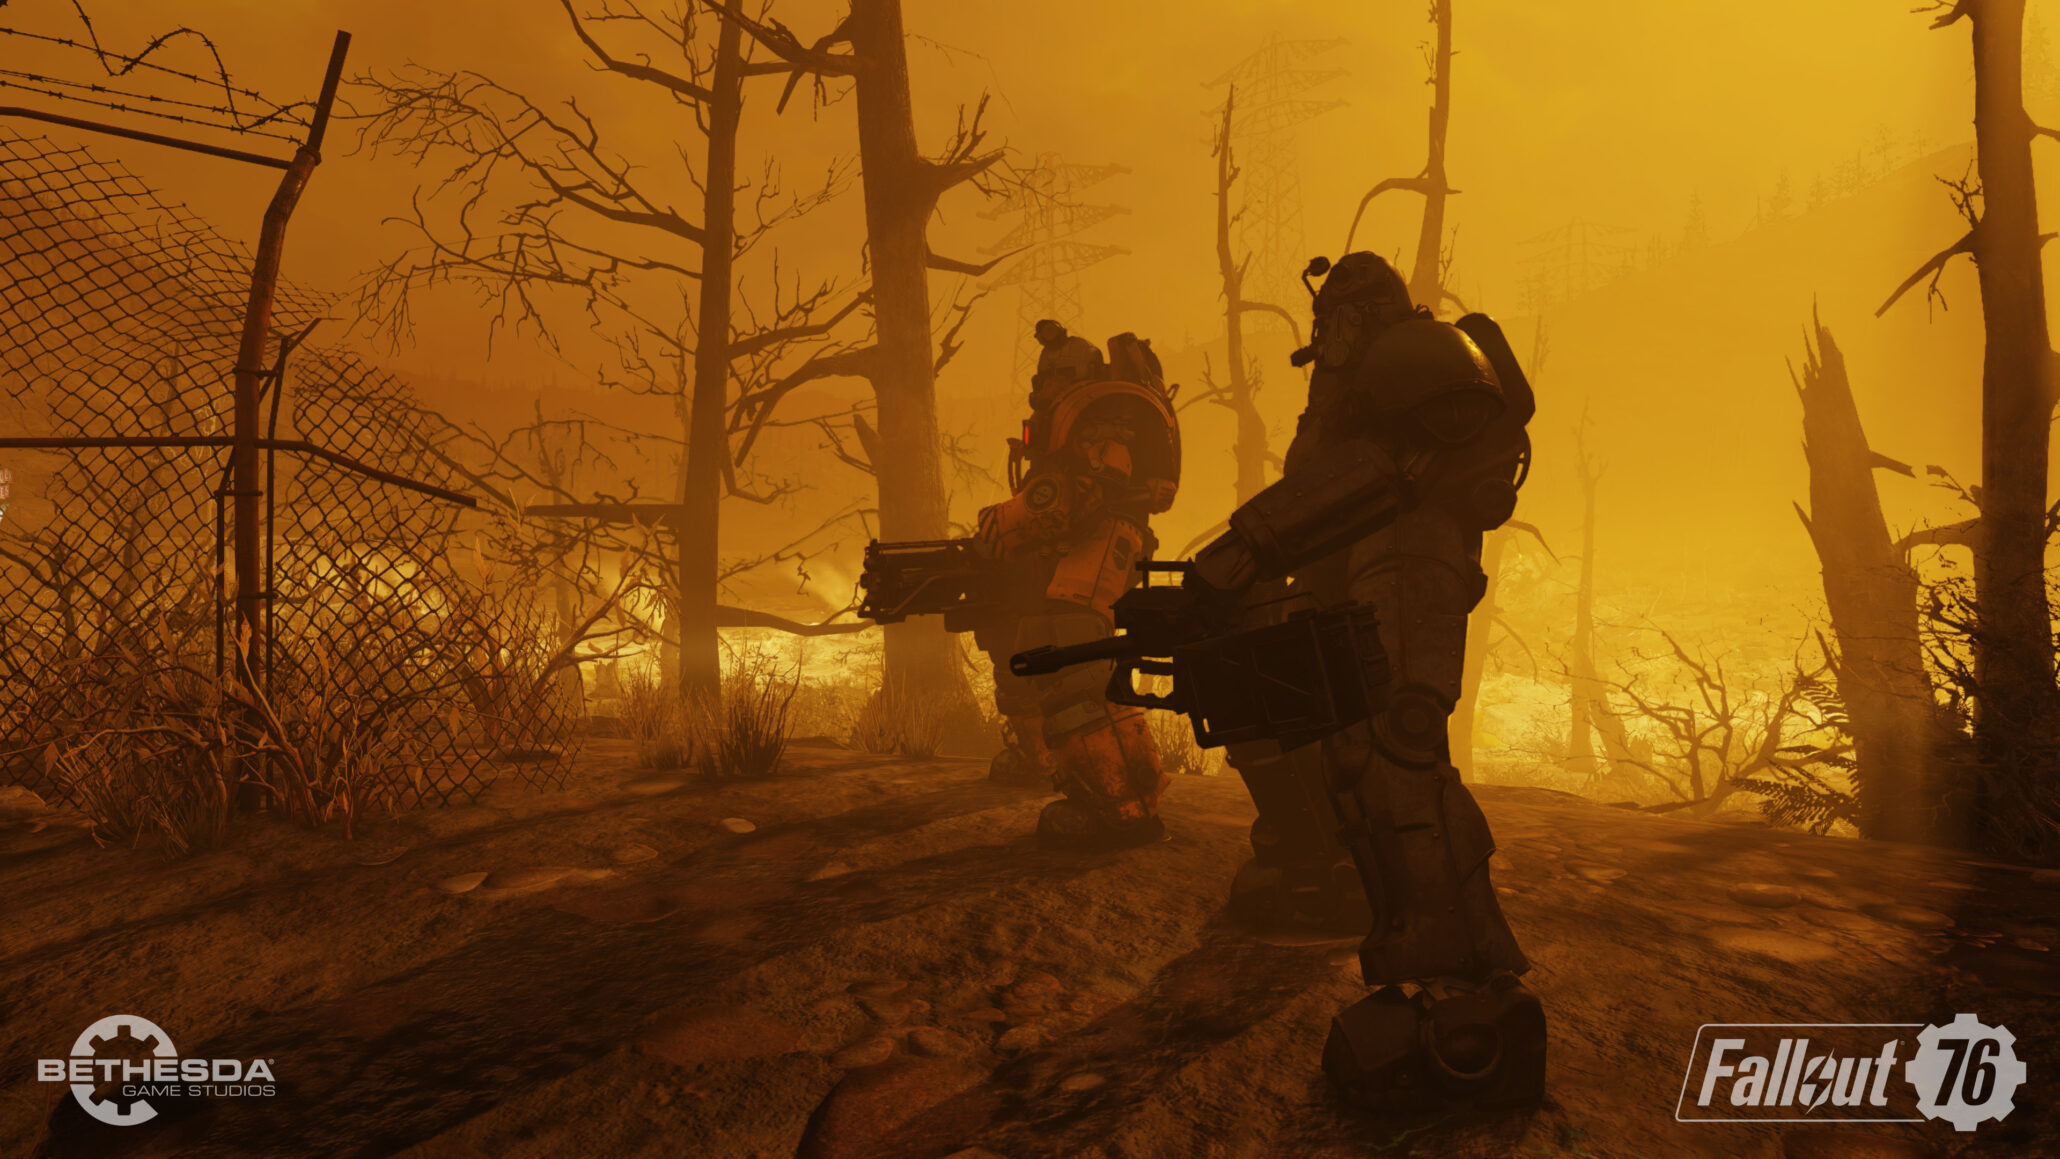 Fallout 76 Doesn't Support Ultra Wide Displays, No FOV Slider & Game